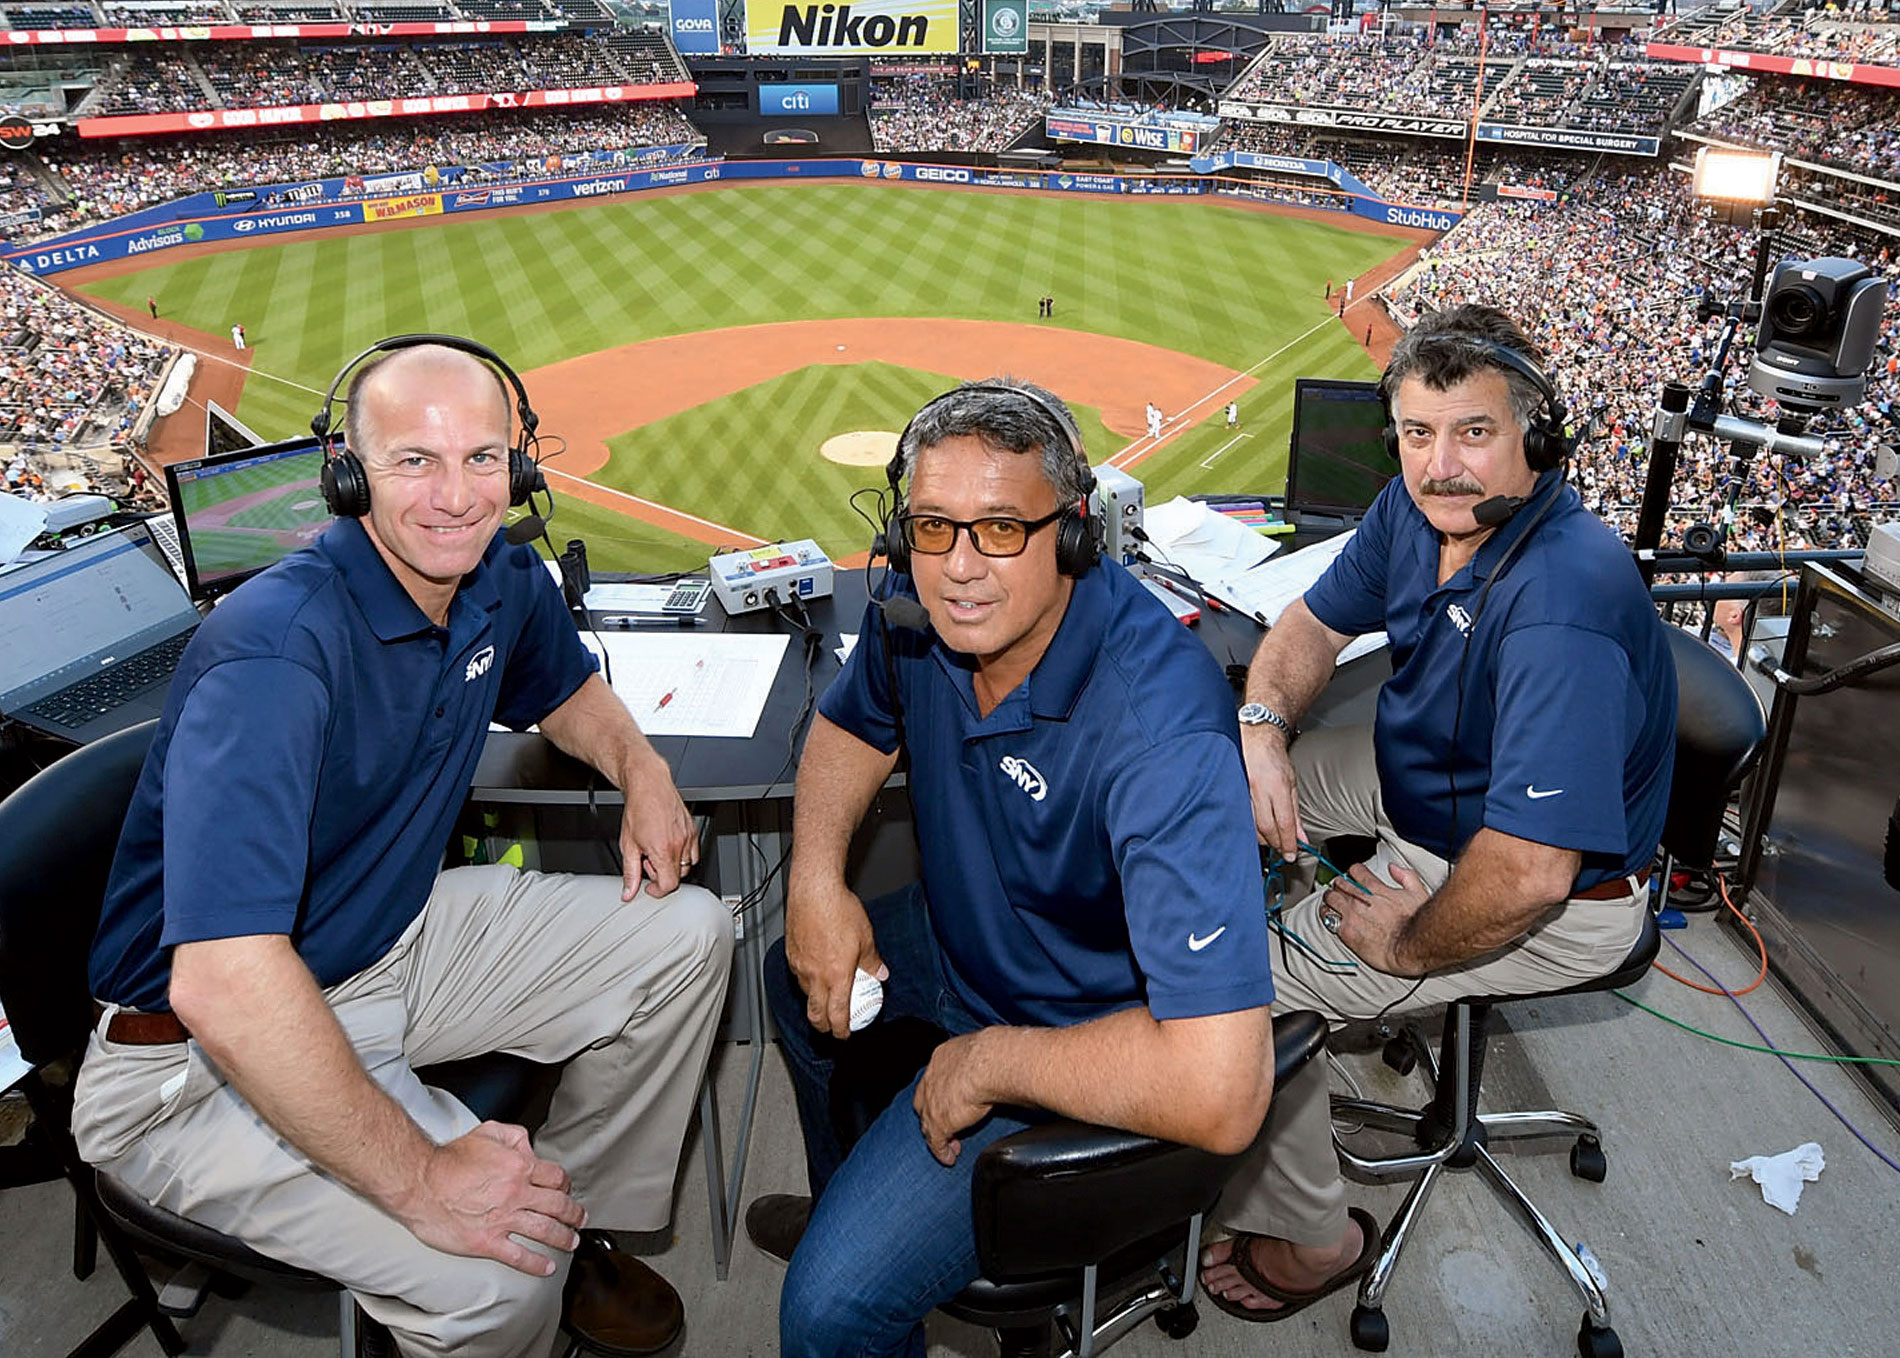 Gary Cohen, Ron Darling, and Keith Hernandez